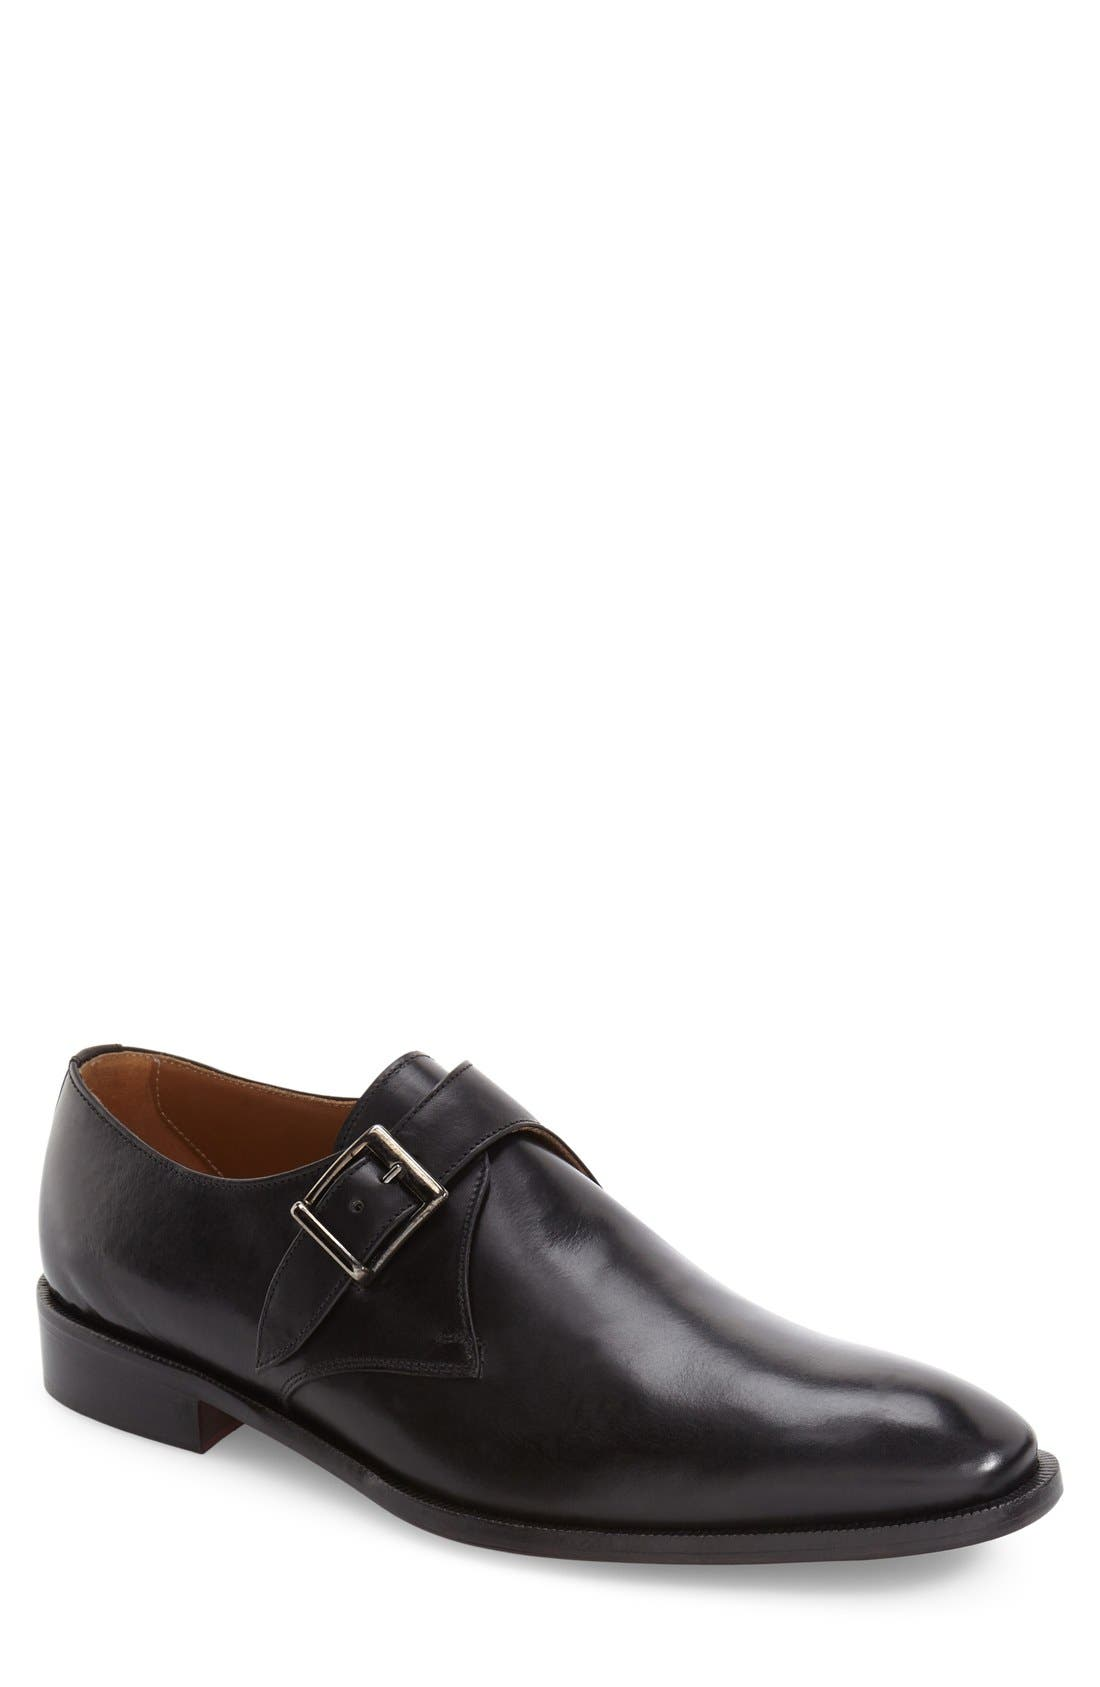 Suit Coat Monk Strap Shoe,                             Alternate thumbnail 3, color,                             001